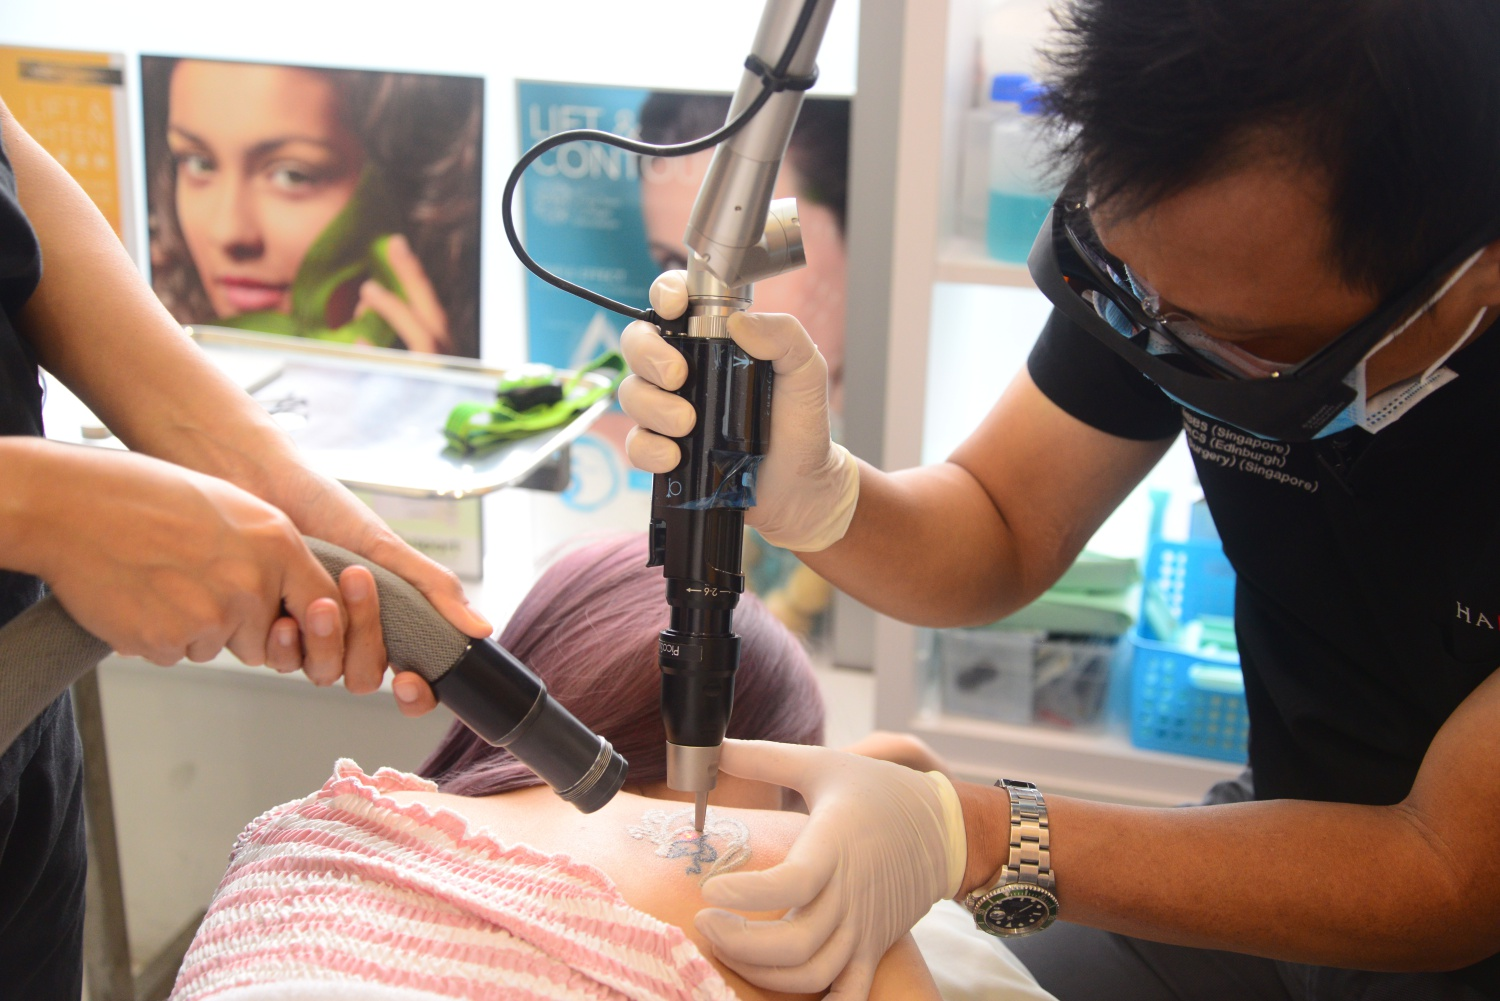 Tattoo_Removal_Picosure_Laser_Halley_Medical_Aesthetics_Singapore_5